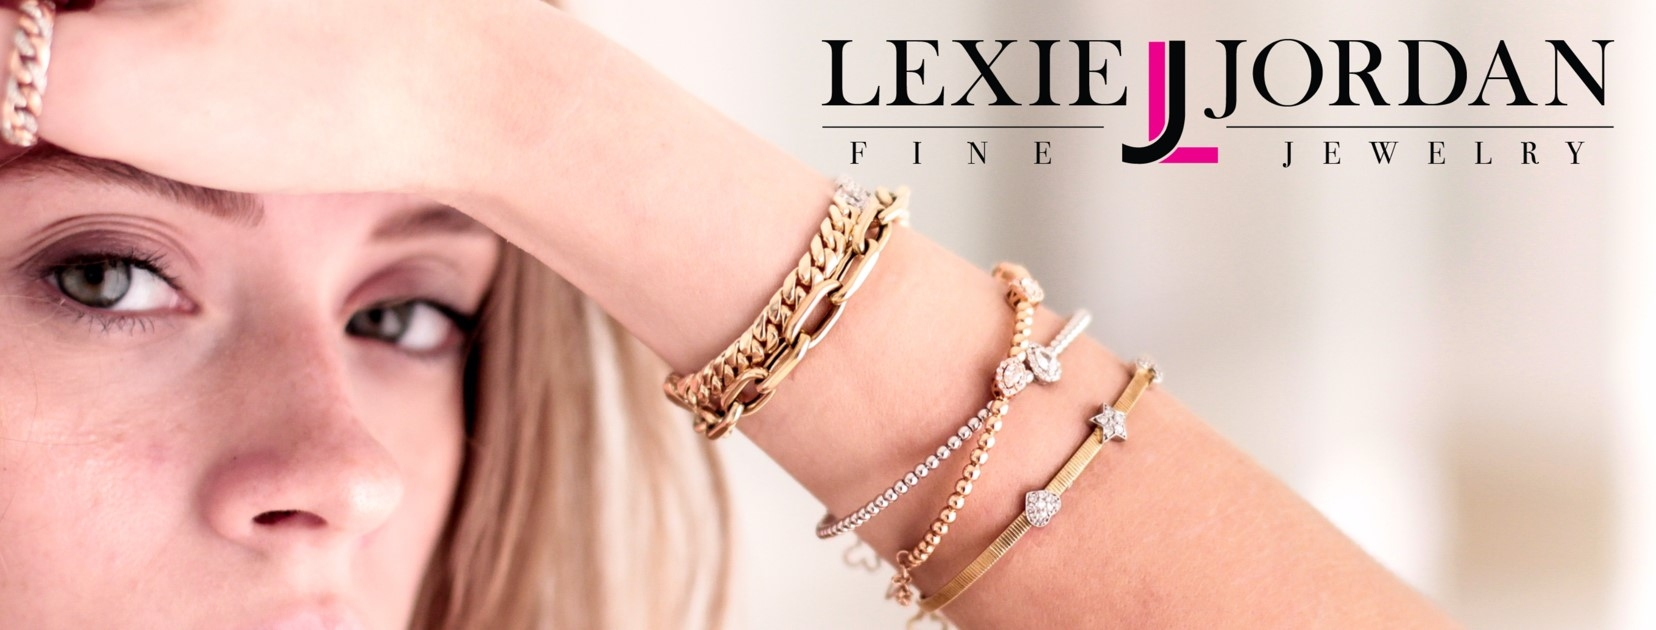 Lexie Jordan Jewelry (@lexie_jordan_jewelry) Cover Image